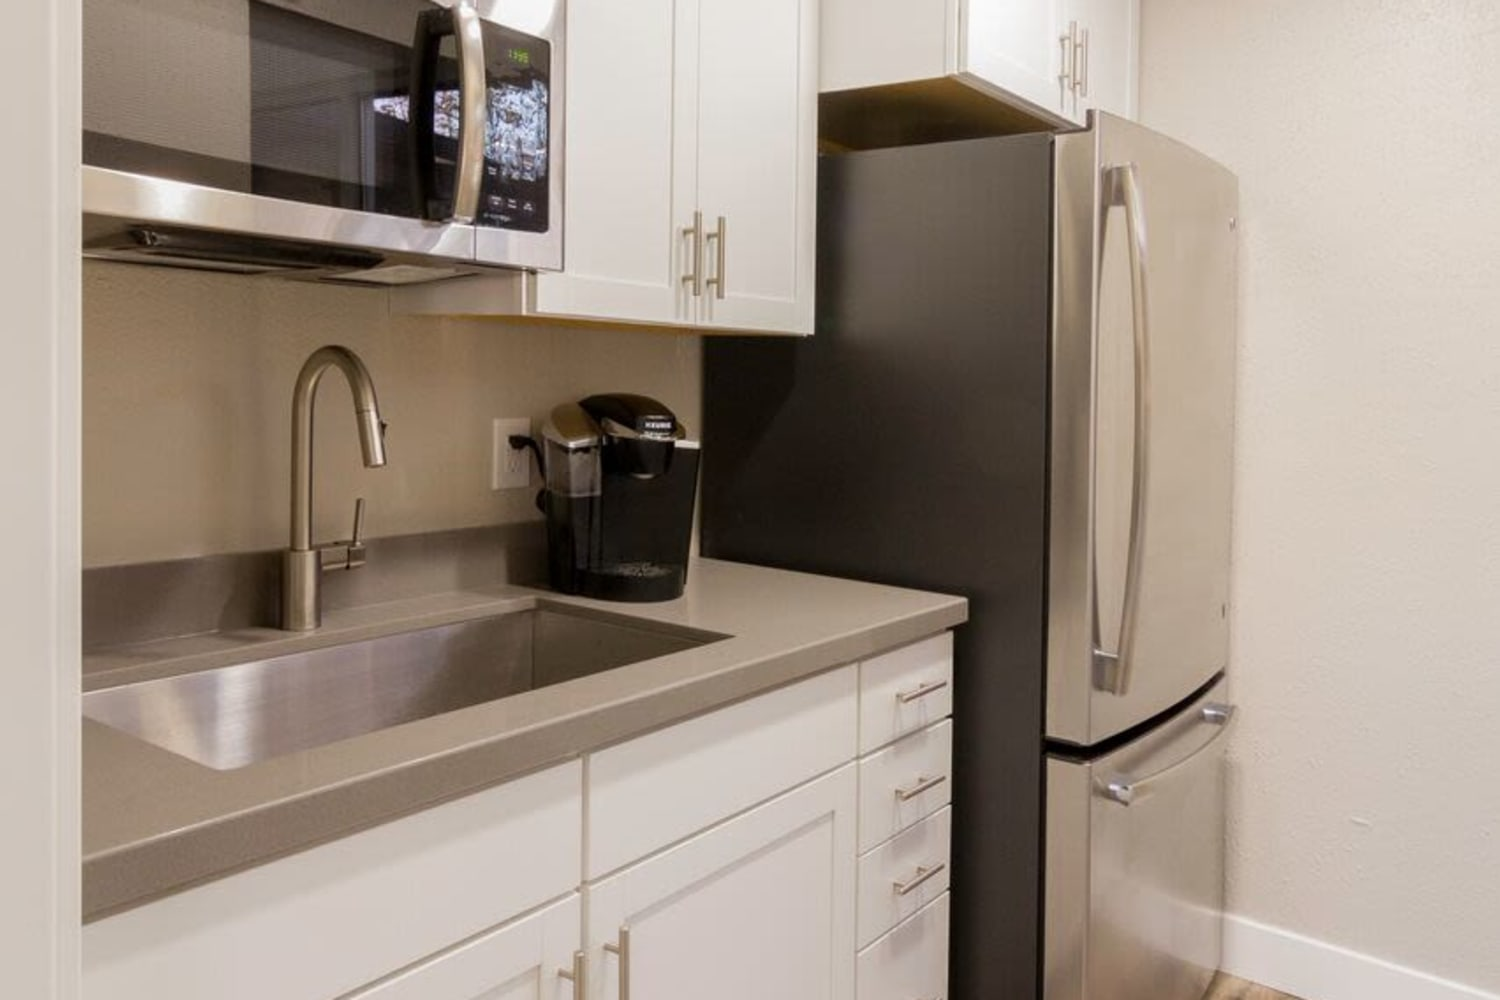 Stainless steel appliances in kitchens at Wasatch Club Apartments in Midvale, Utah